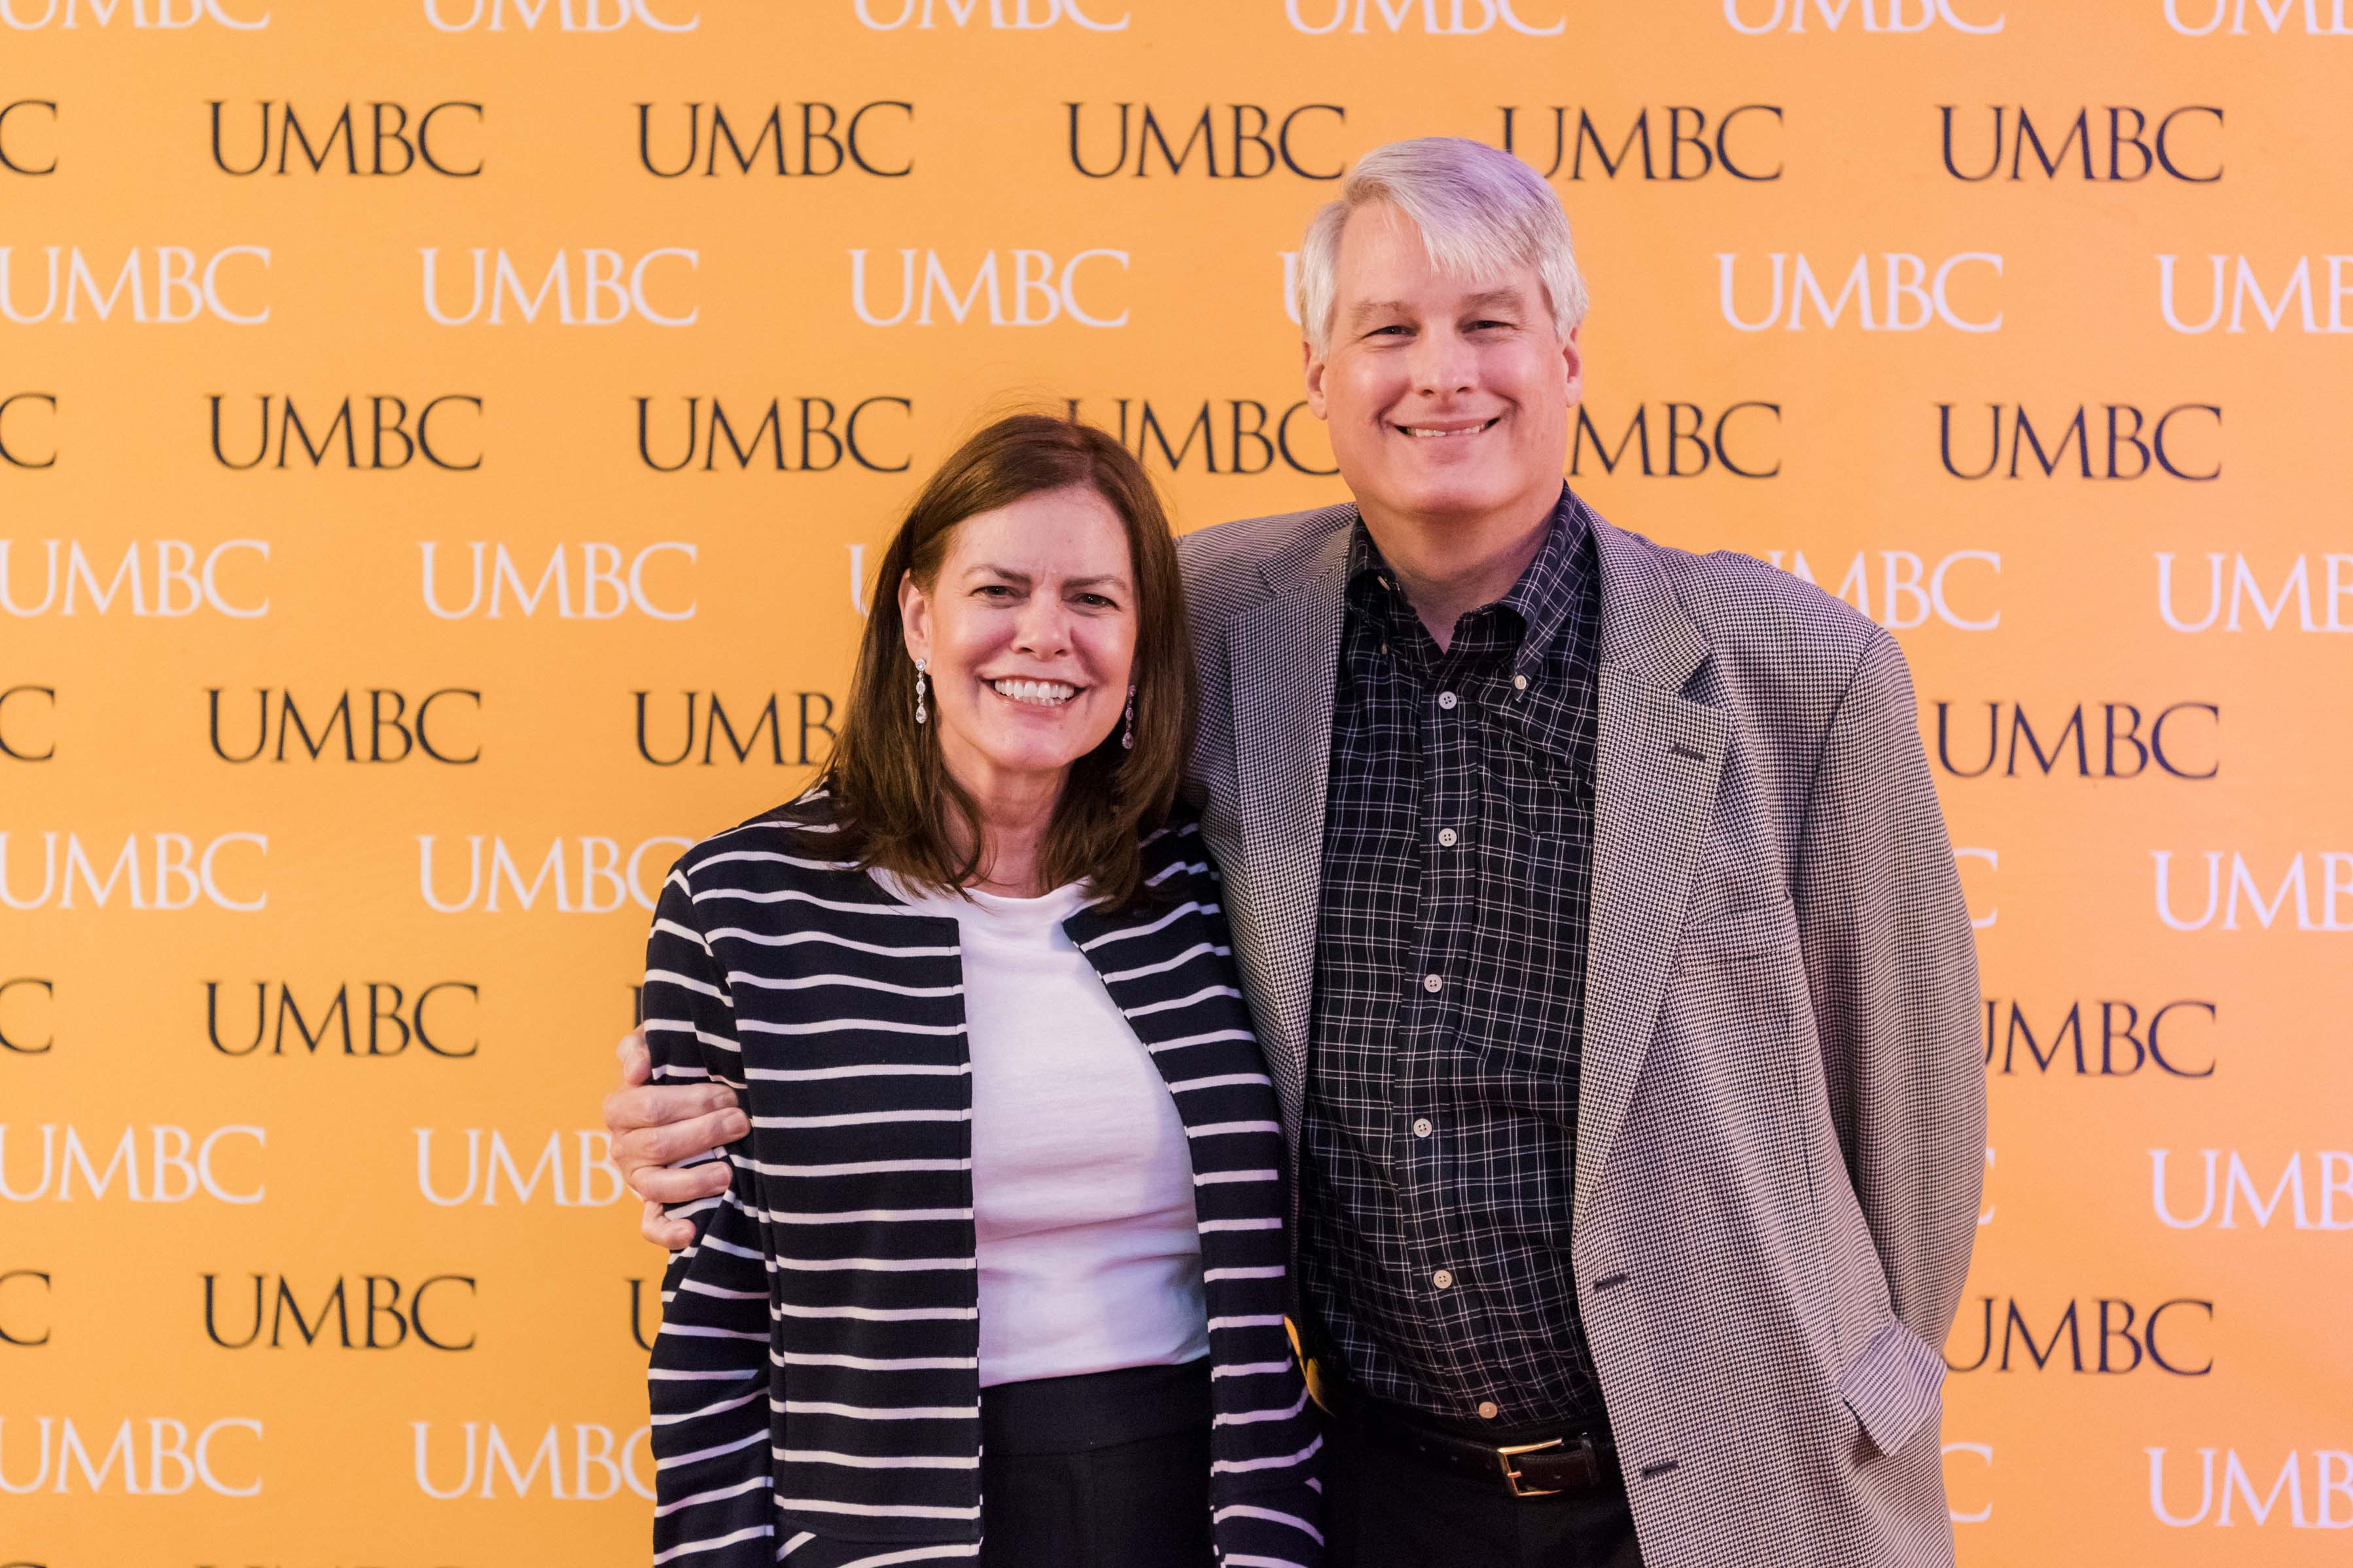 Man and woman pose in front of UMBC wall for CYA event